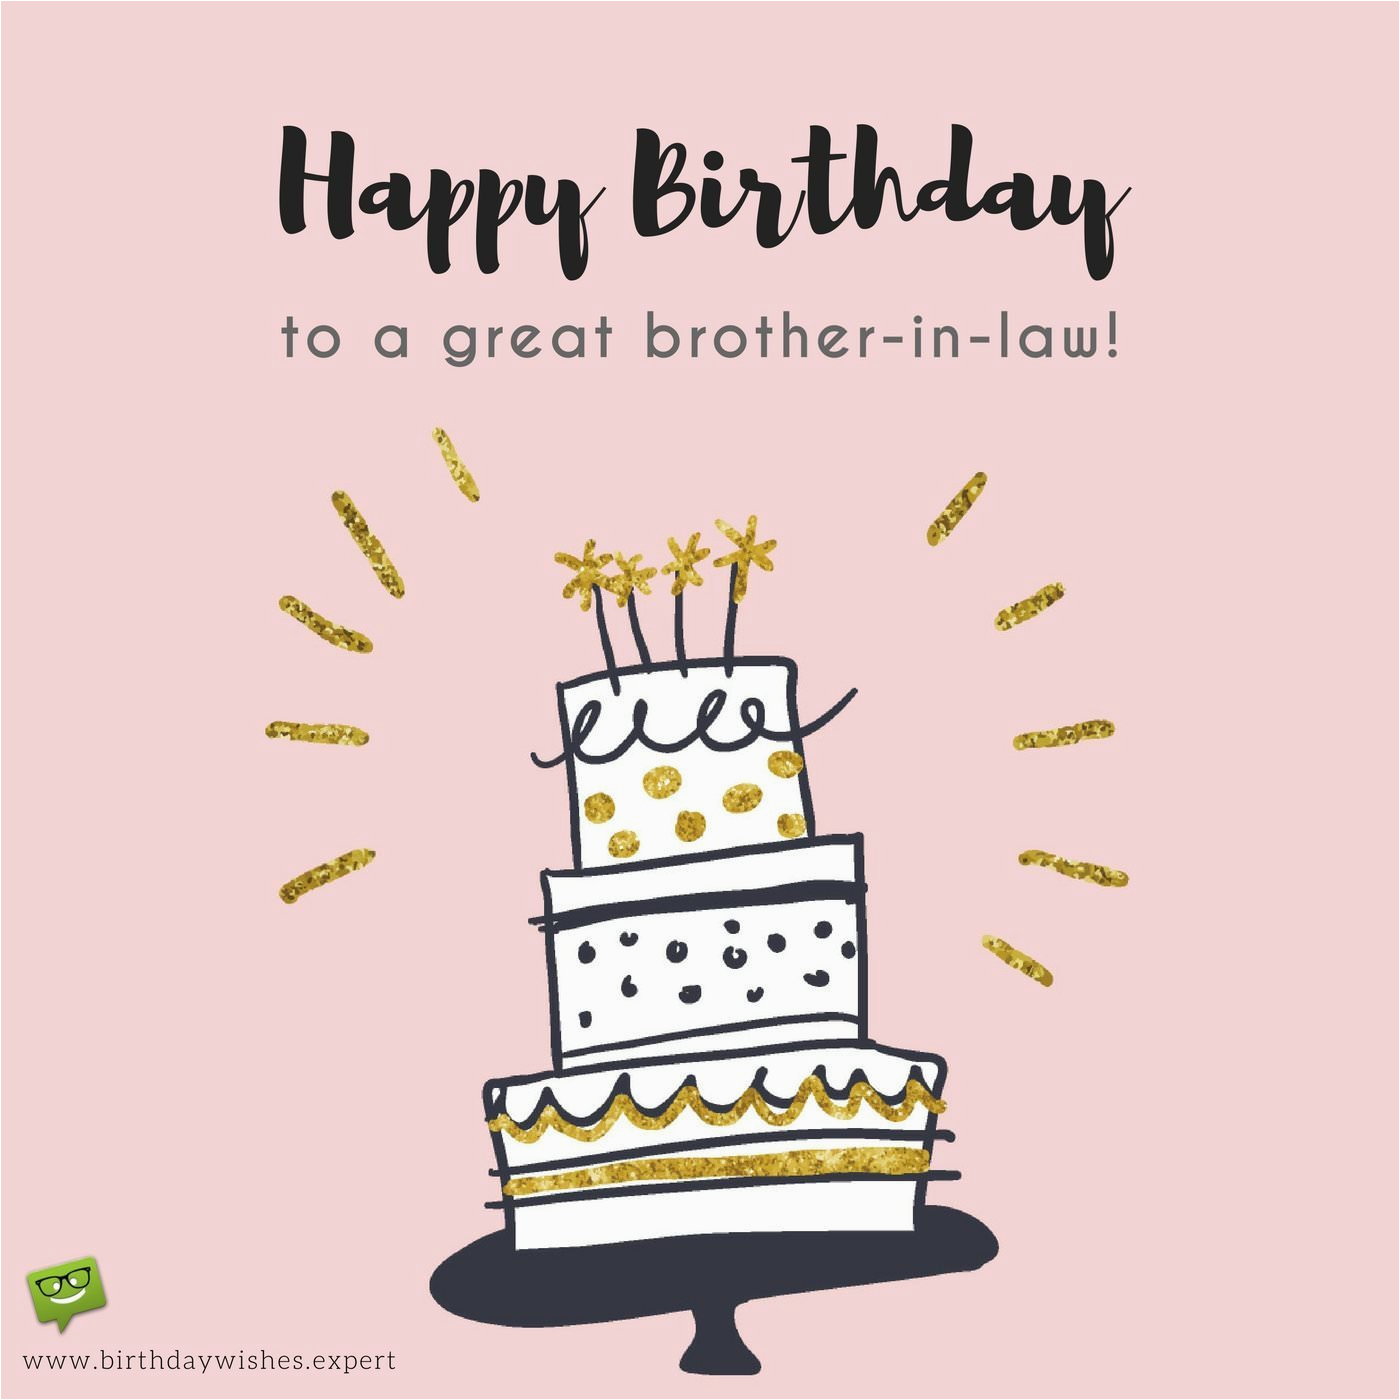 Happy Birthday Cards For Brother In Law Wishes Your